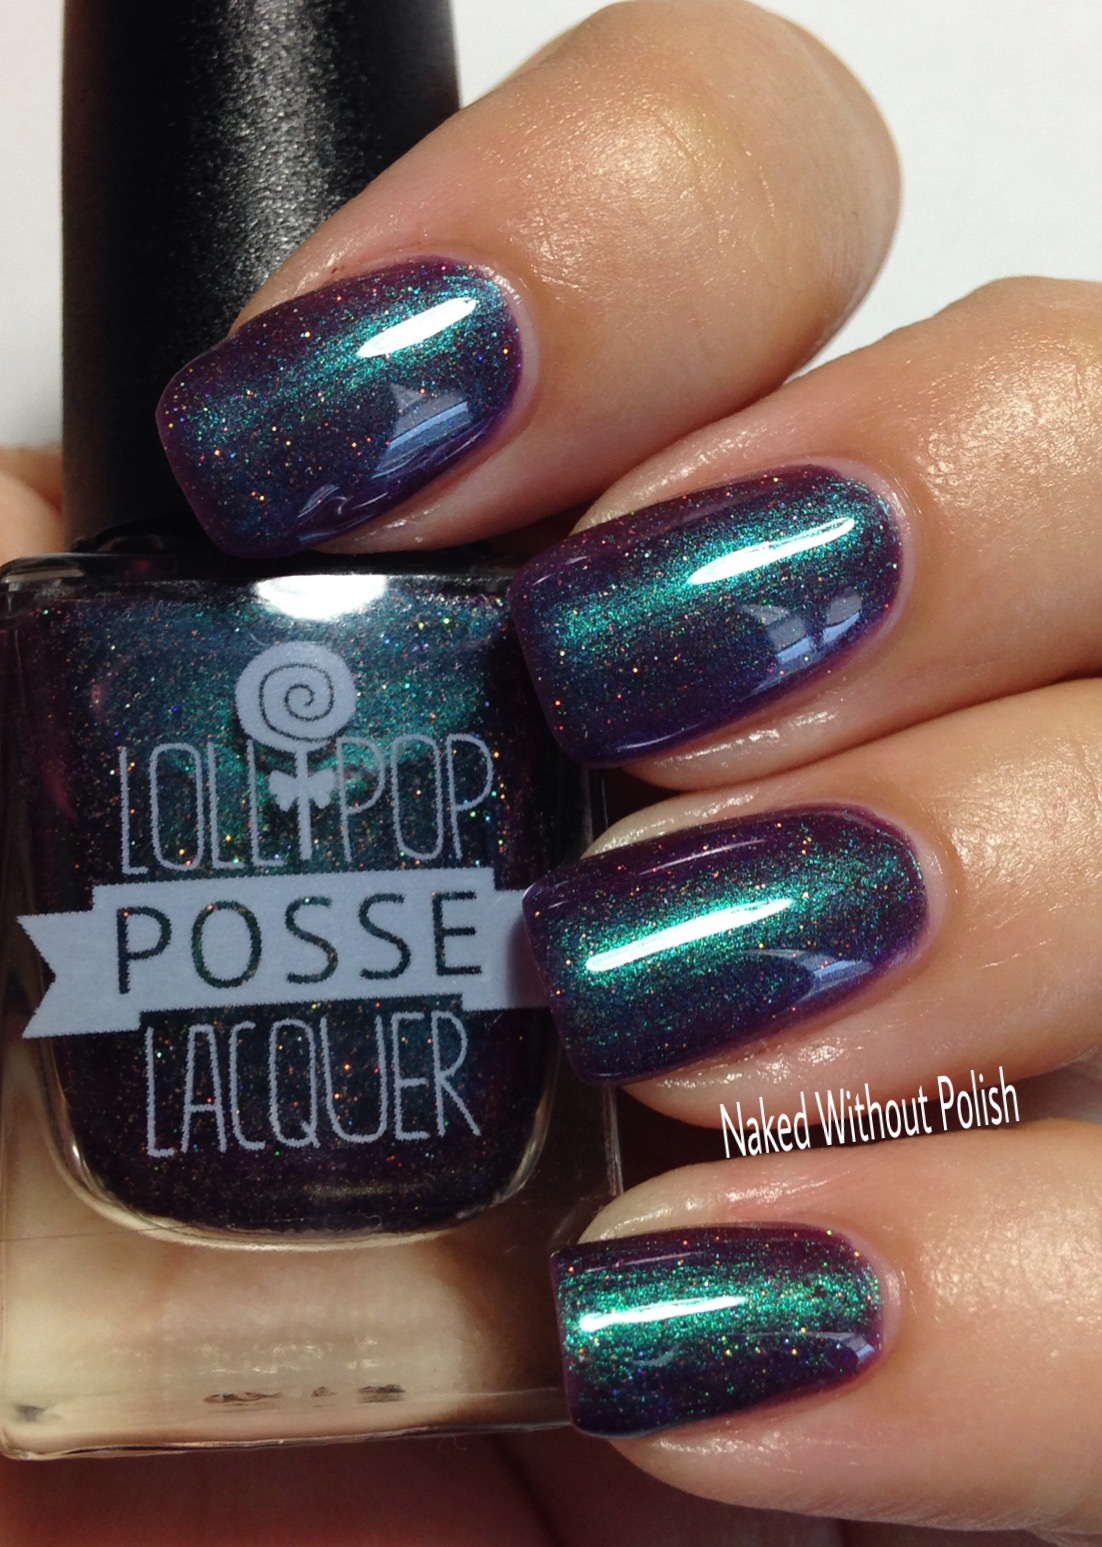 Polish-Pickup-Lollipop-Posse-Lacquer-Film-Noir-11